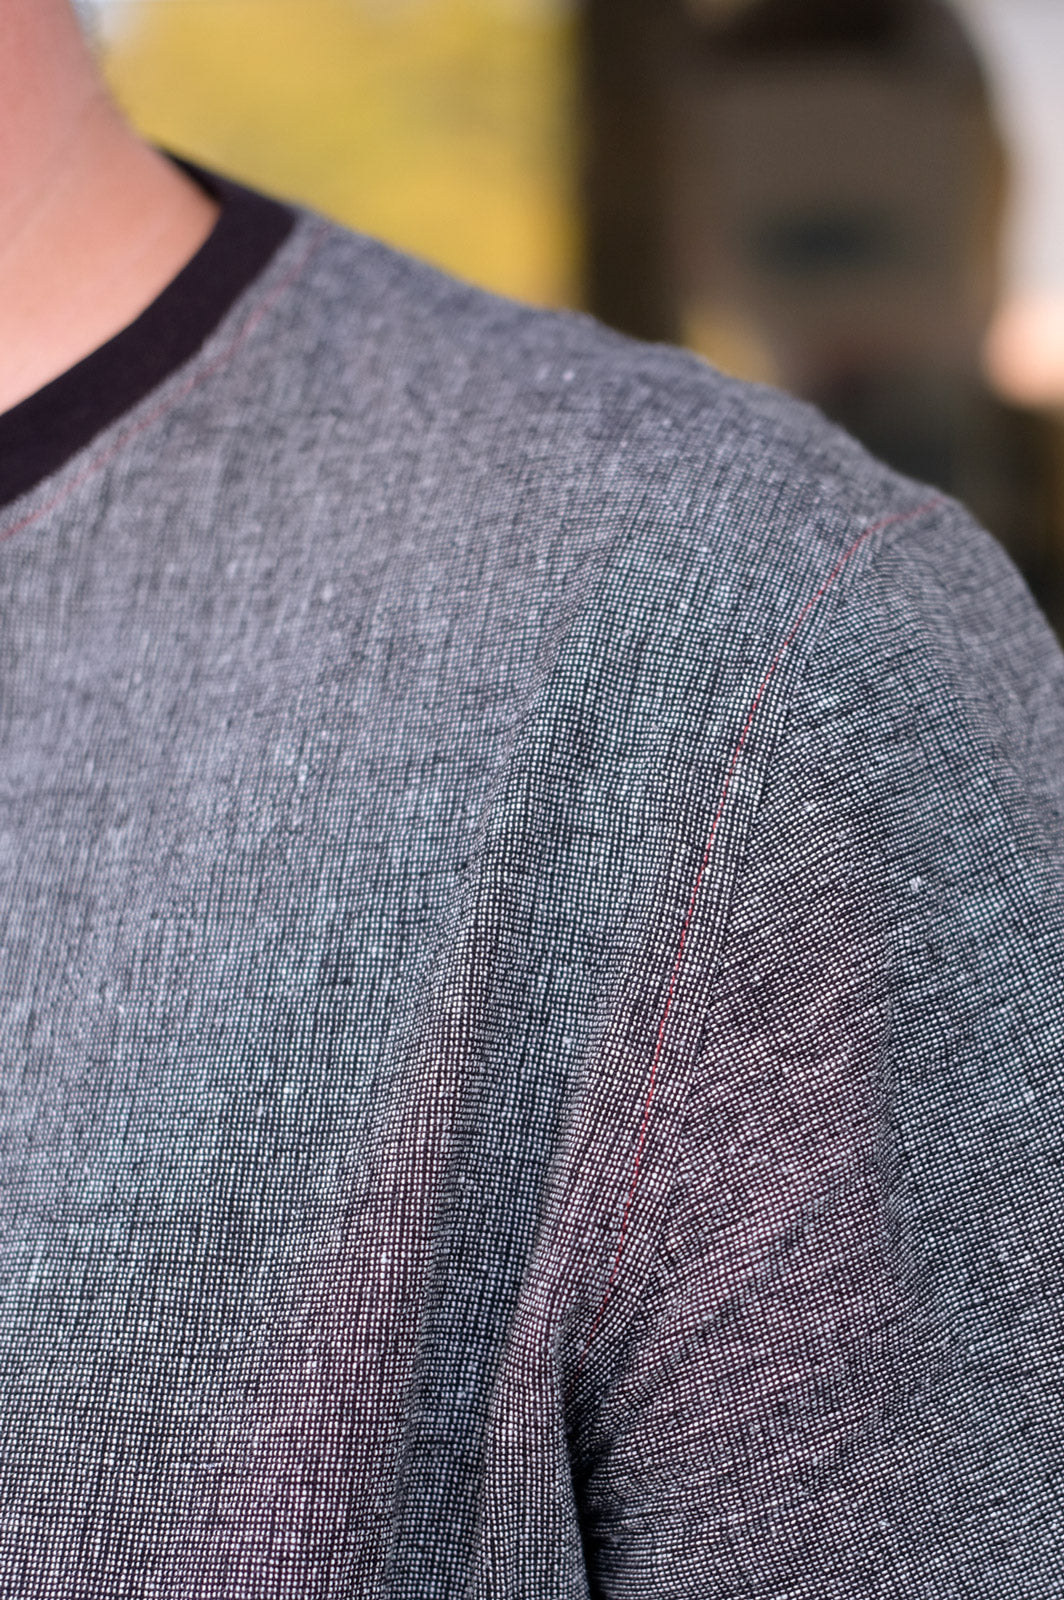 Red Stitching Detail on The Merchant and Mills Tee Shirt